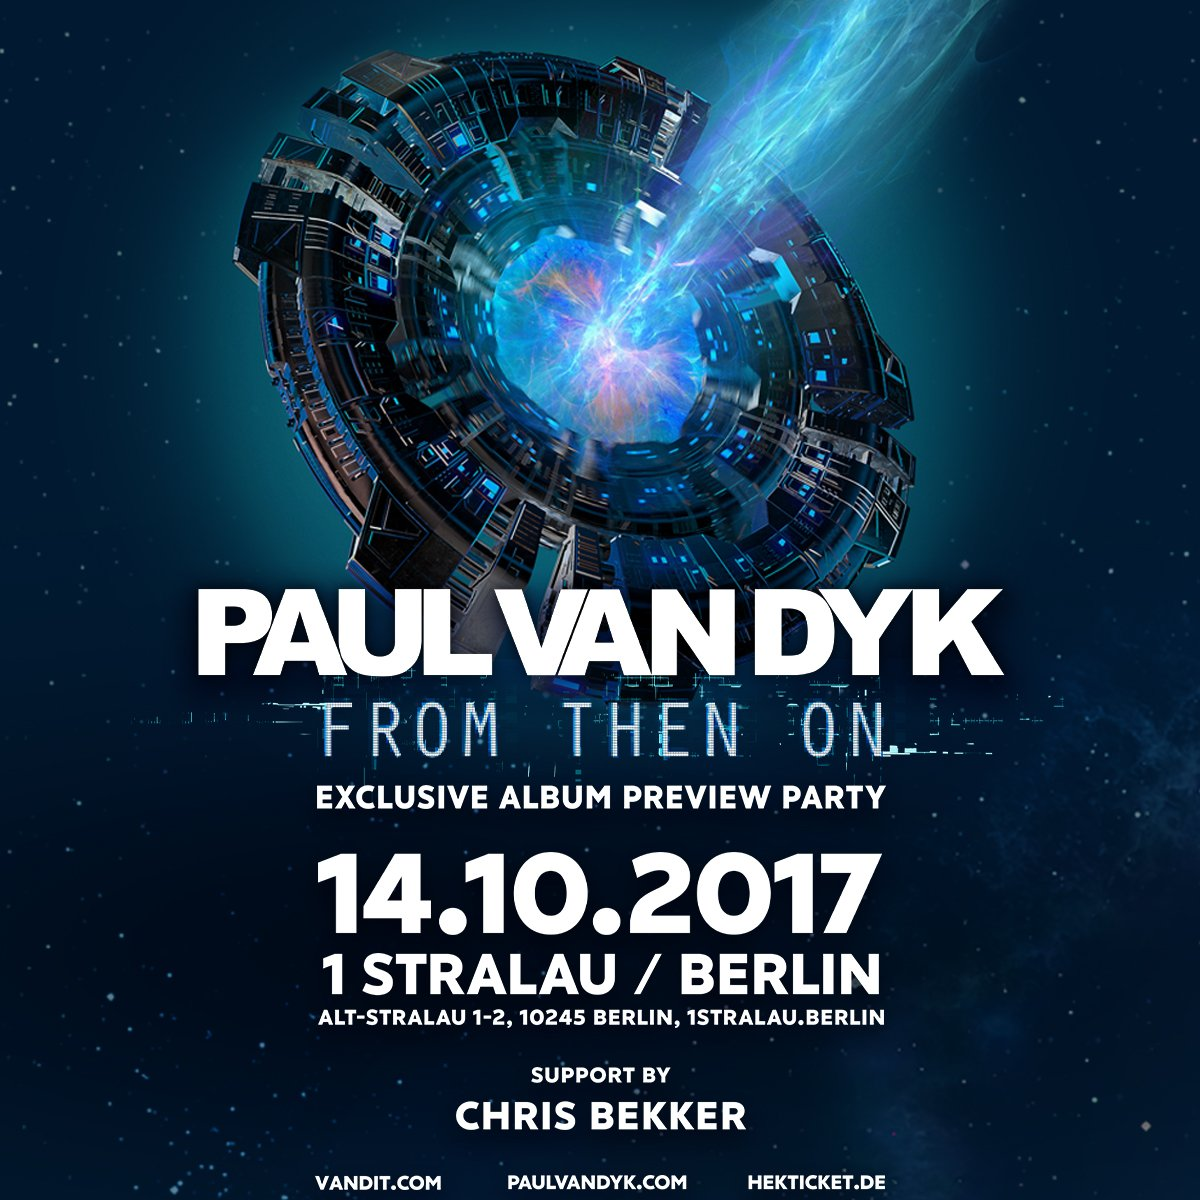 BERLIN - join me October 14th for an exclusive album preview event! #FromThenOn https://t.co/AOE0RDTUtv https://t.co/3LQokx7FyL